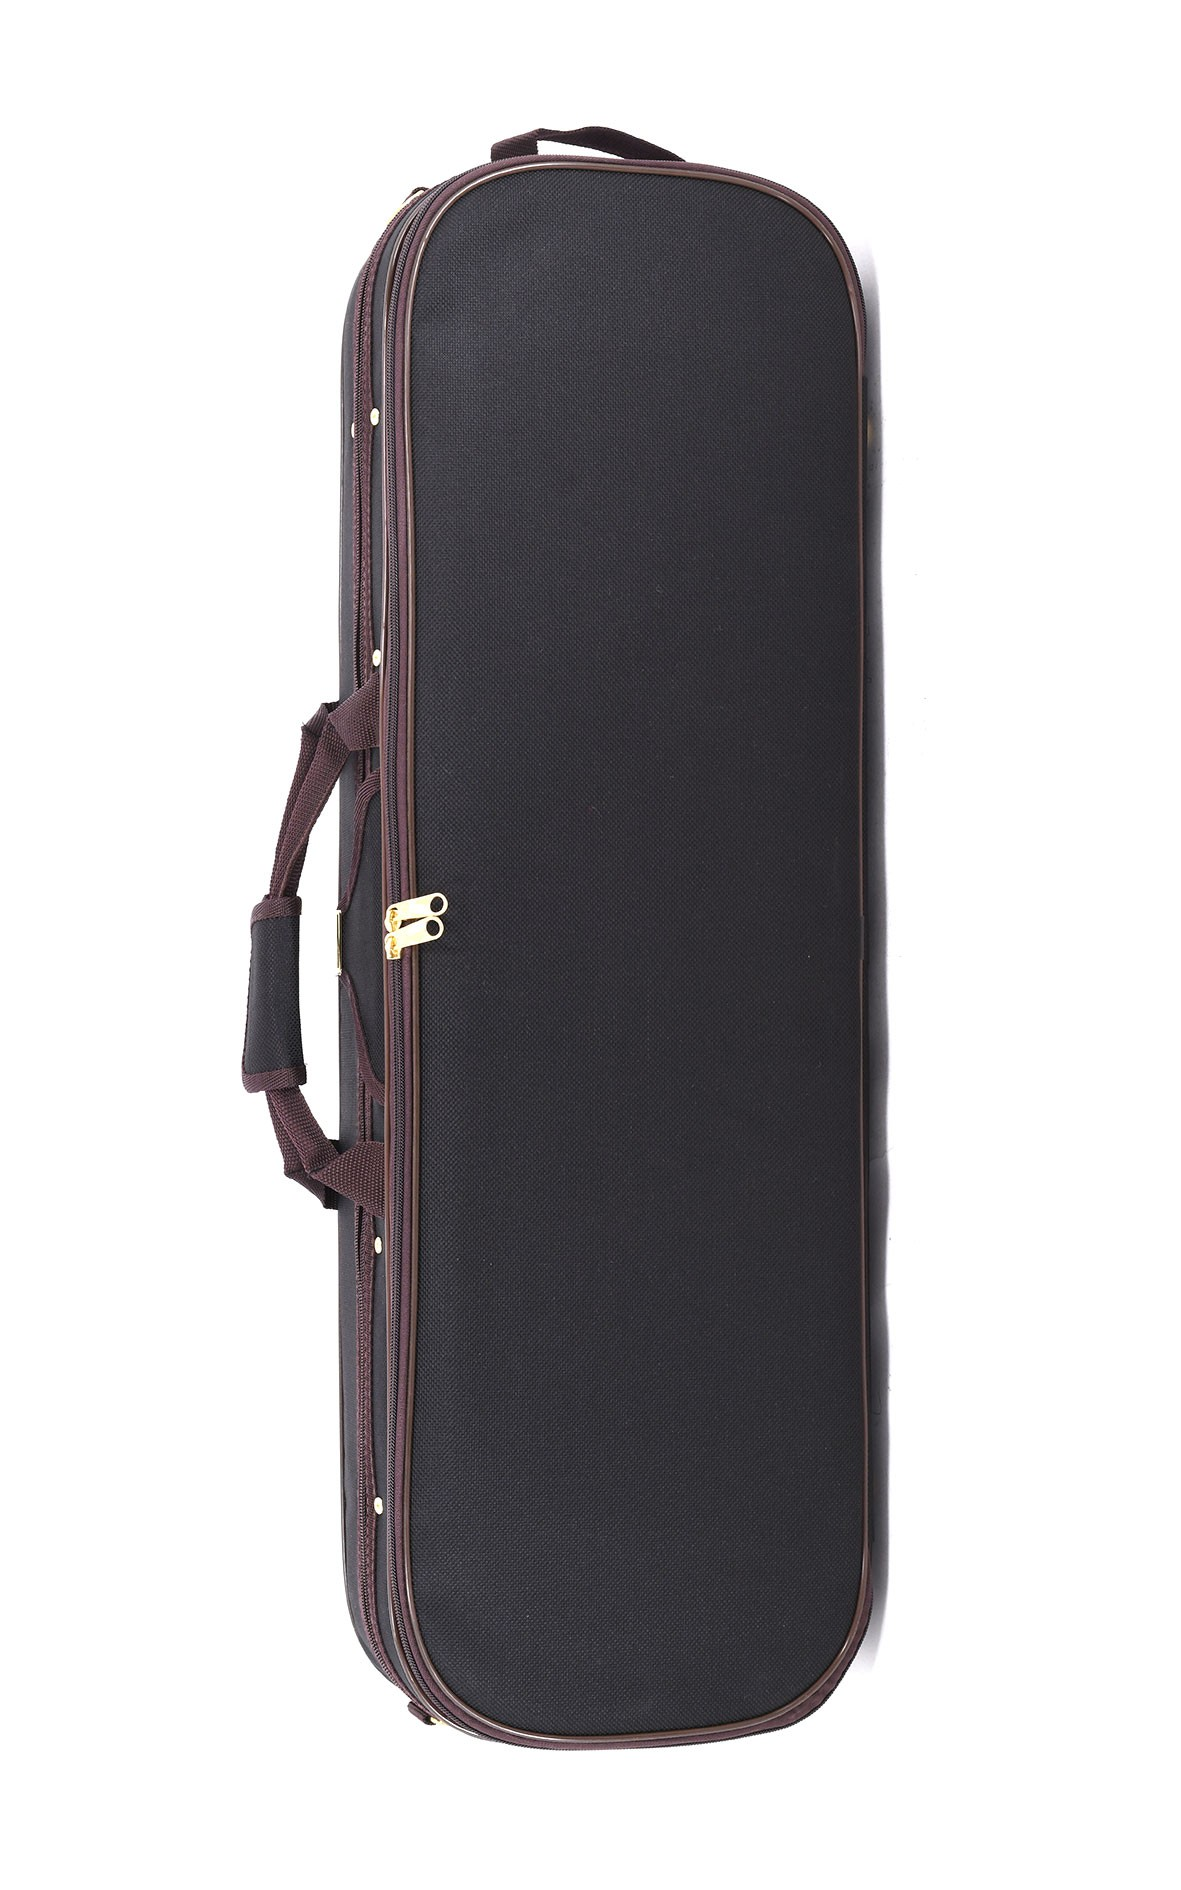 Practical and well-equipped violin case